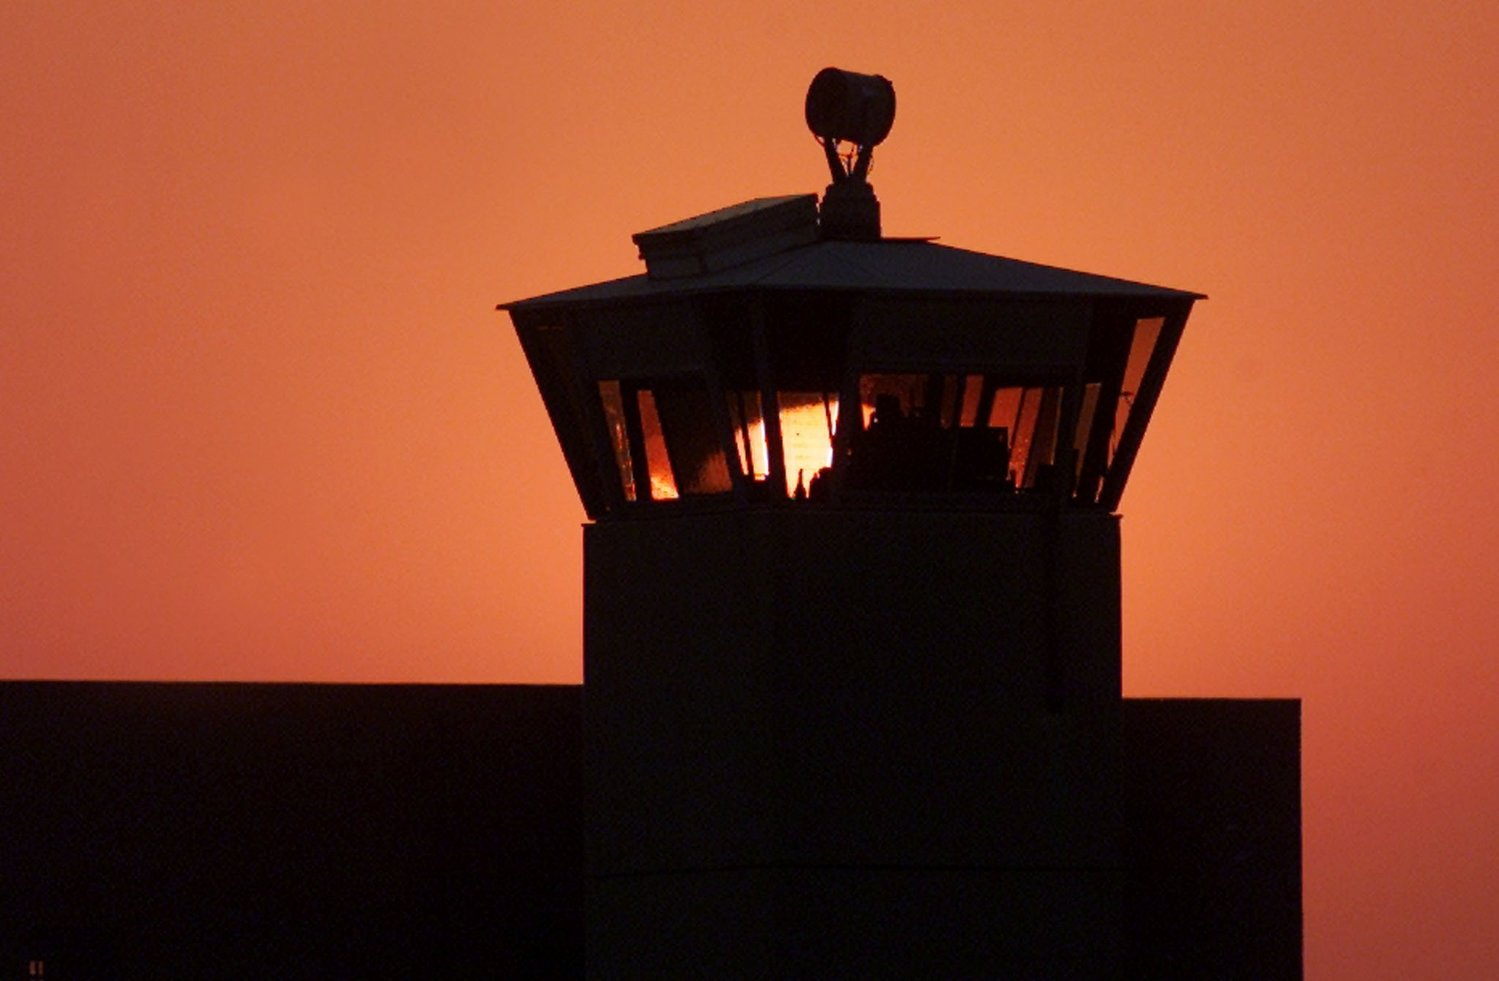 The sun sets behind one of the guard towers at the Federal Correctional Complex in Terre Haute, Ind., June 10, 2001. The death chamber at the correctional facility is where the federal death penalty is carried out.